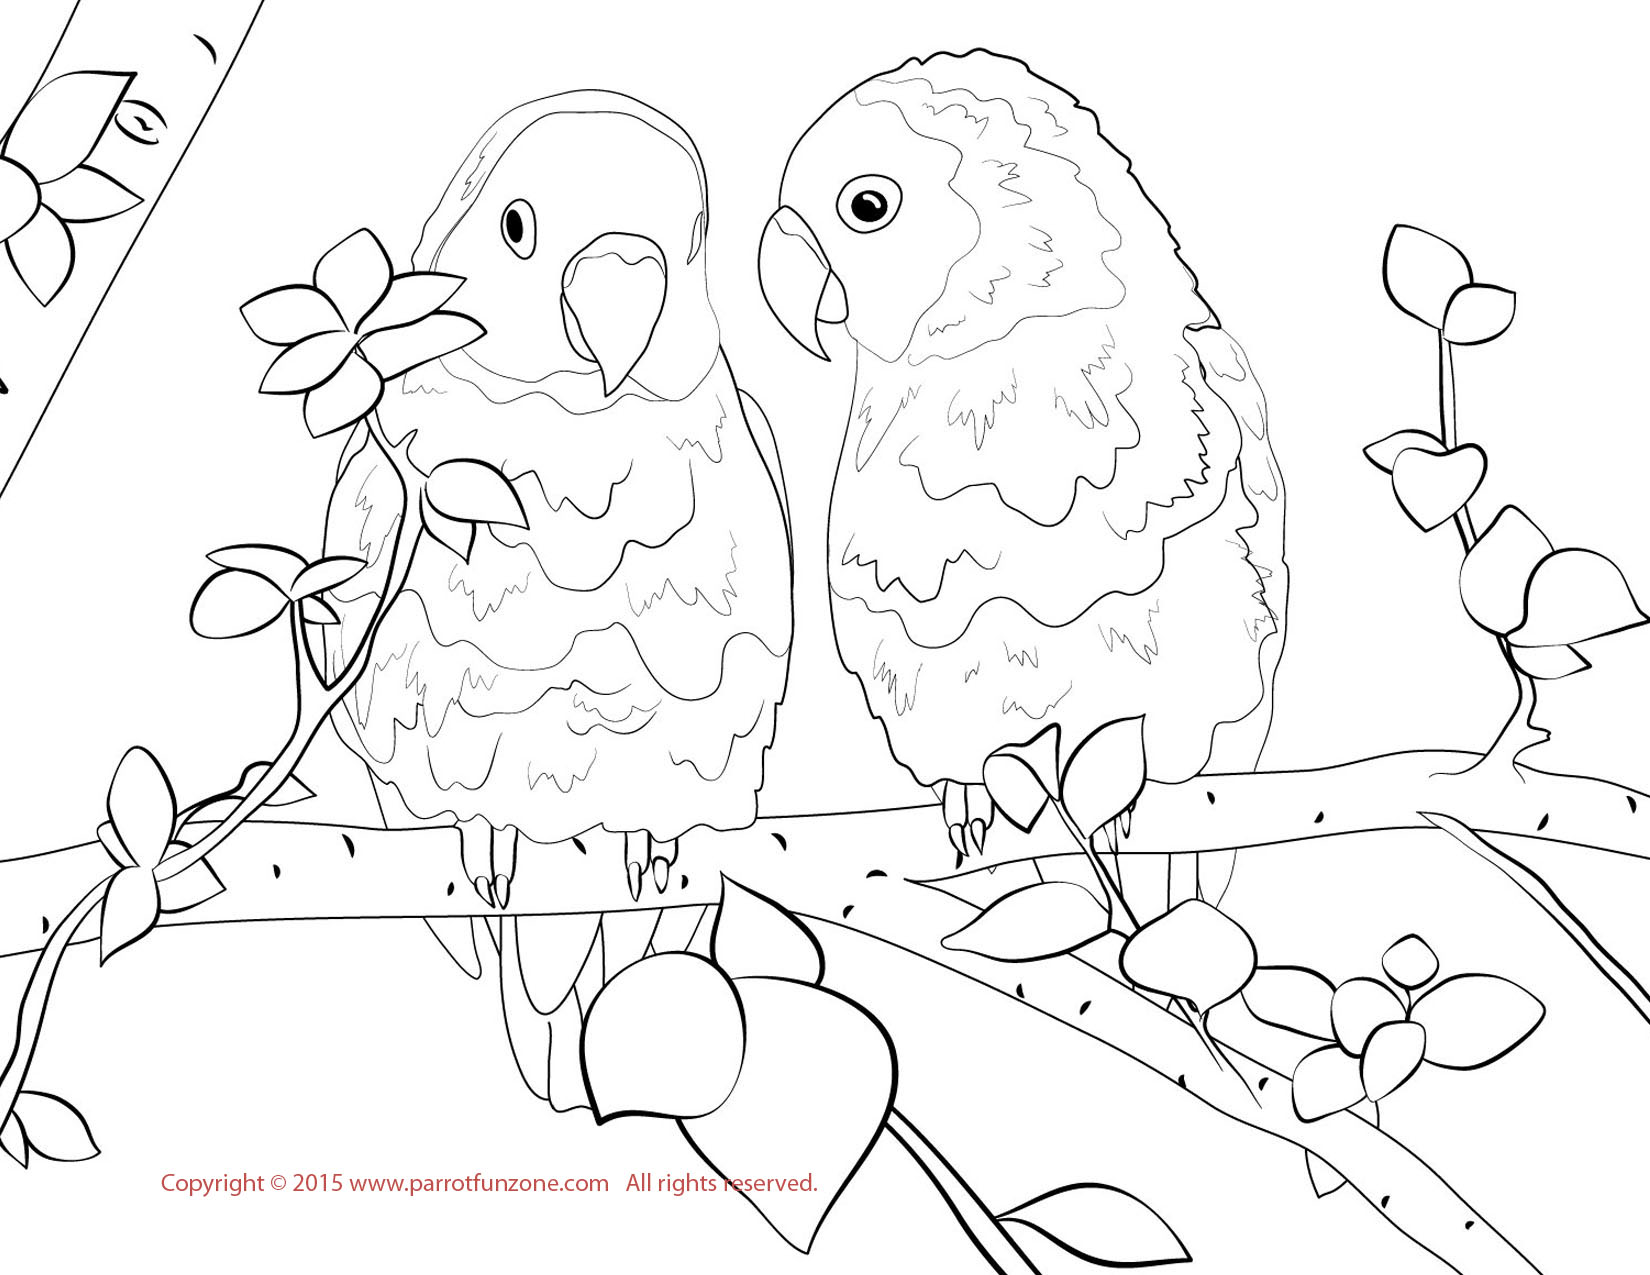 love birds coloring pages birds in love animal coloring pages for kids to print love coloring pages birds